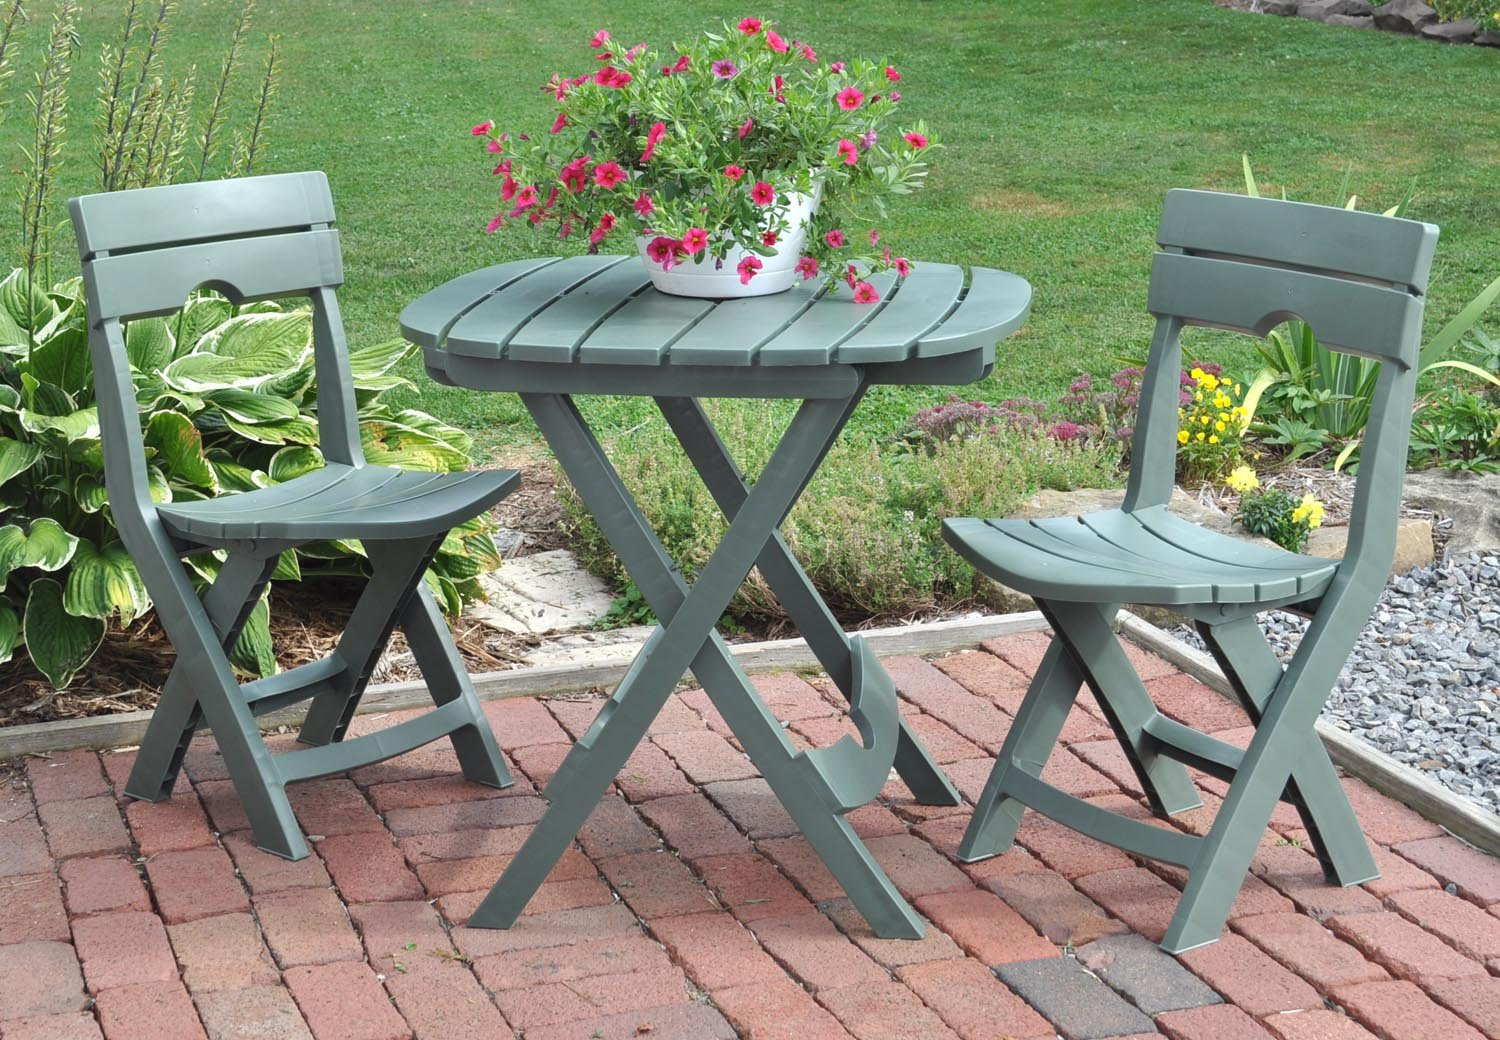 amazoncom adams manufacturing 8590 01 3731 quik fold cafe bistro set sage outdoor and patio furniture sets garden outdoor - Garden Furniture Table And Chairs